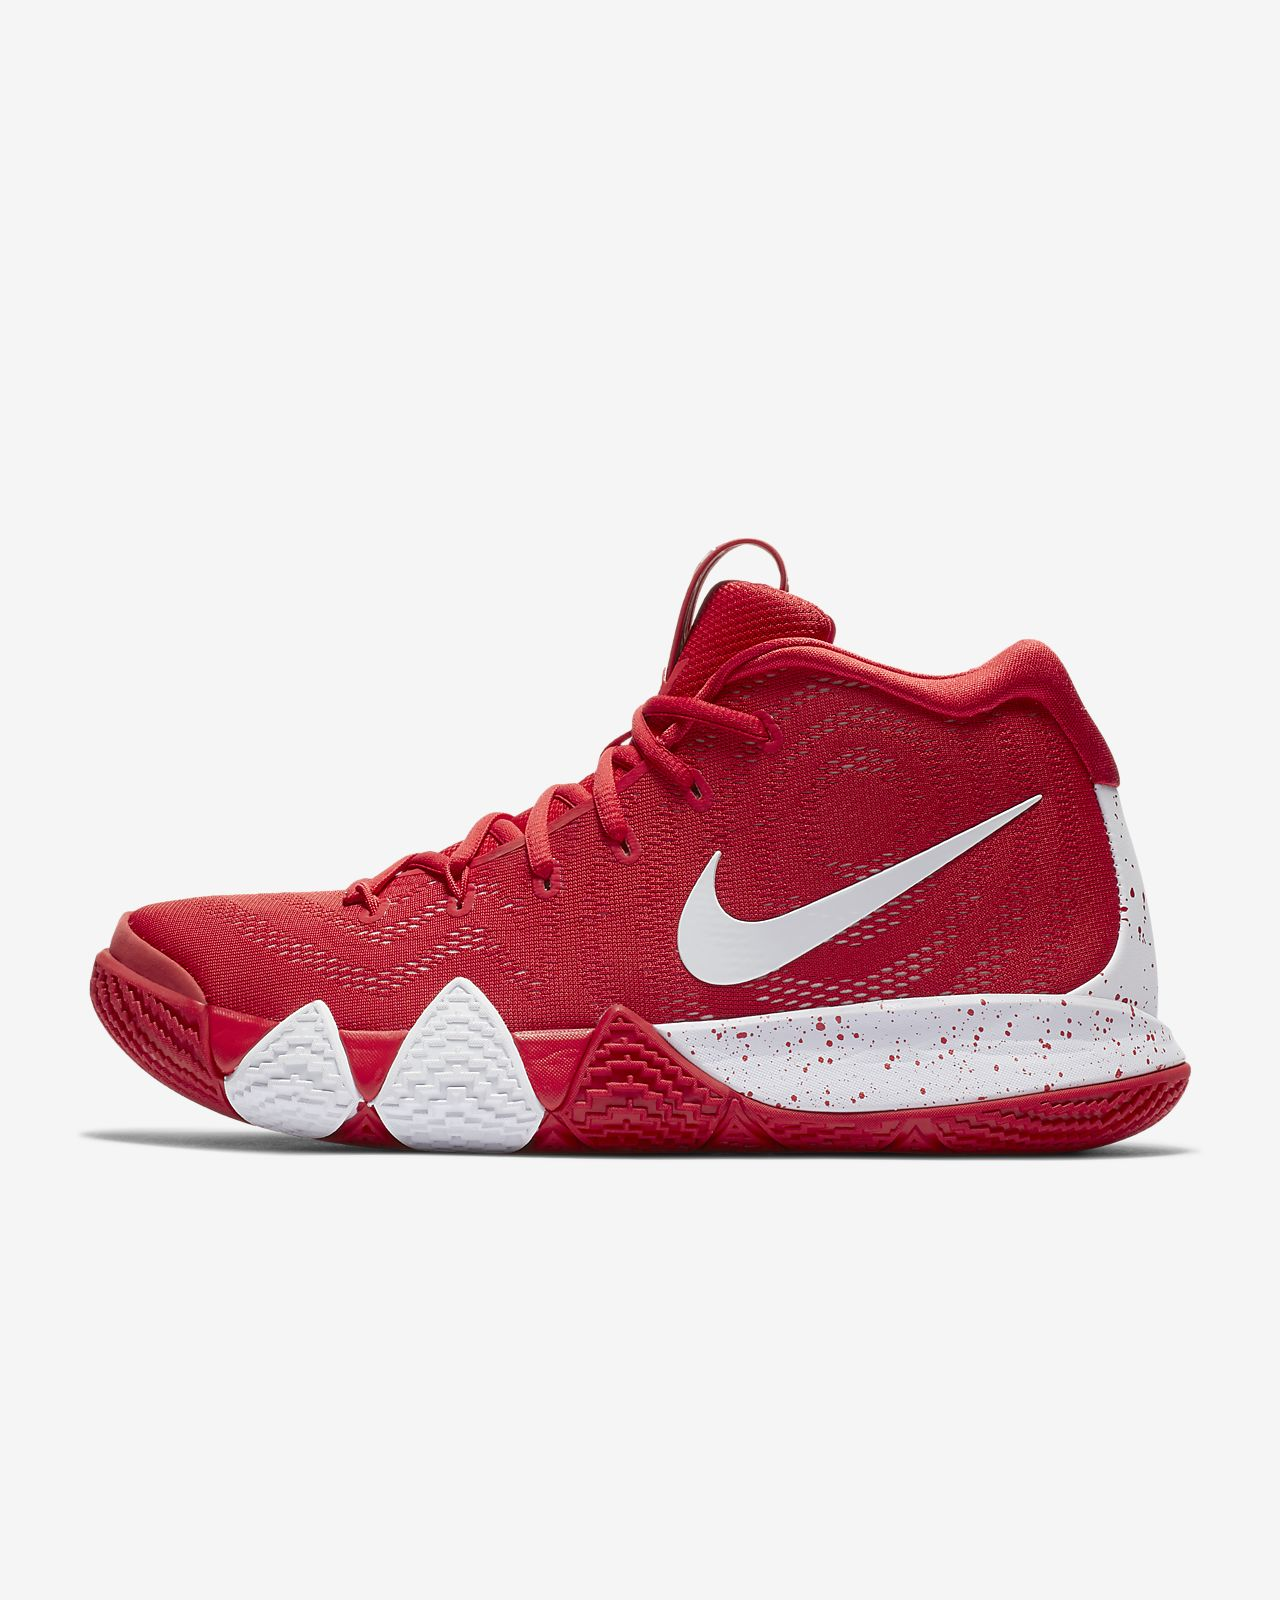 check out ddc32 115fc ... Kyrie 4 (Team) Basketball Shoe